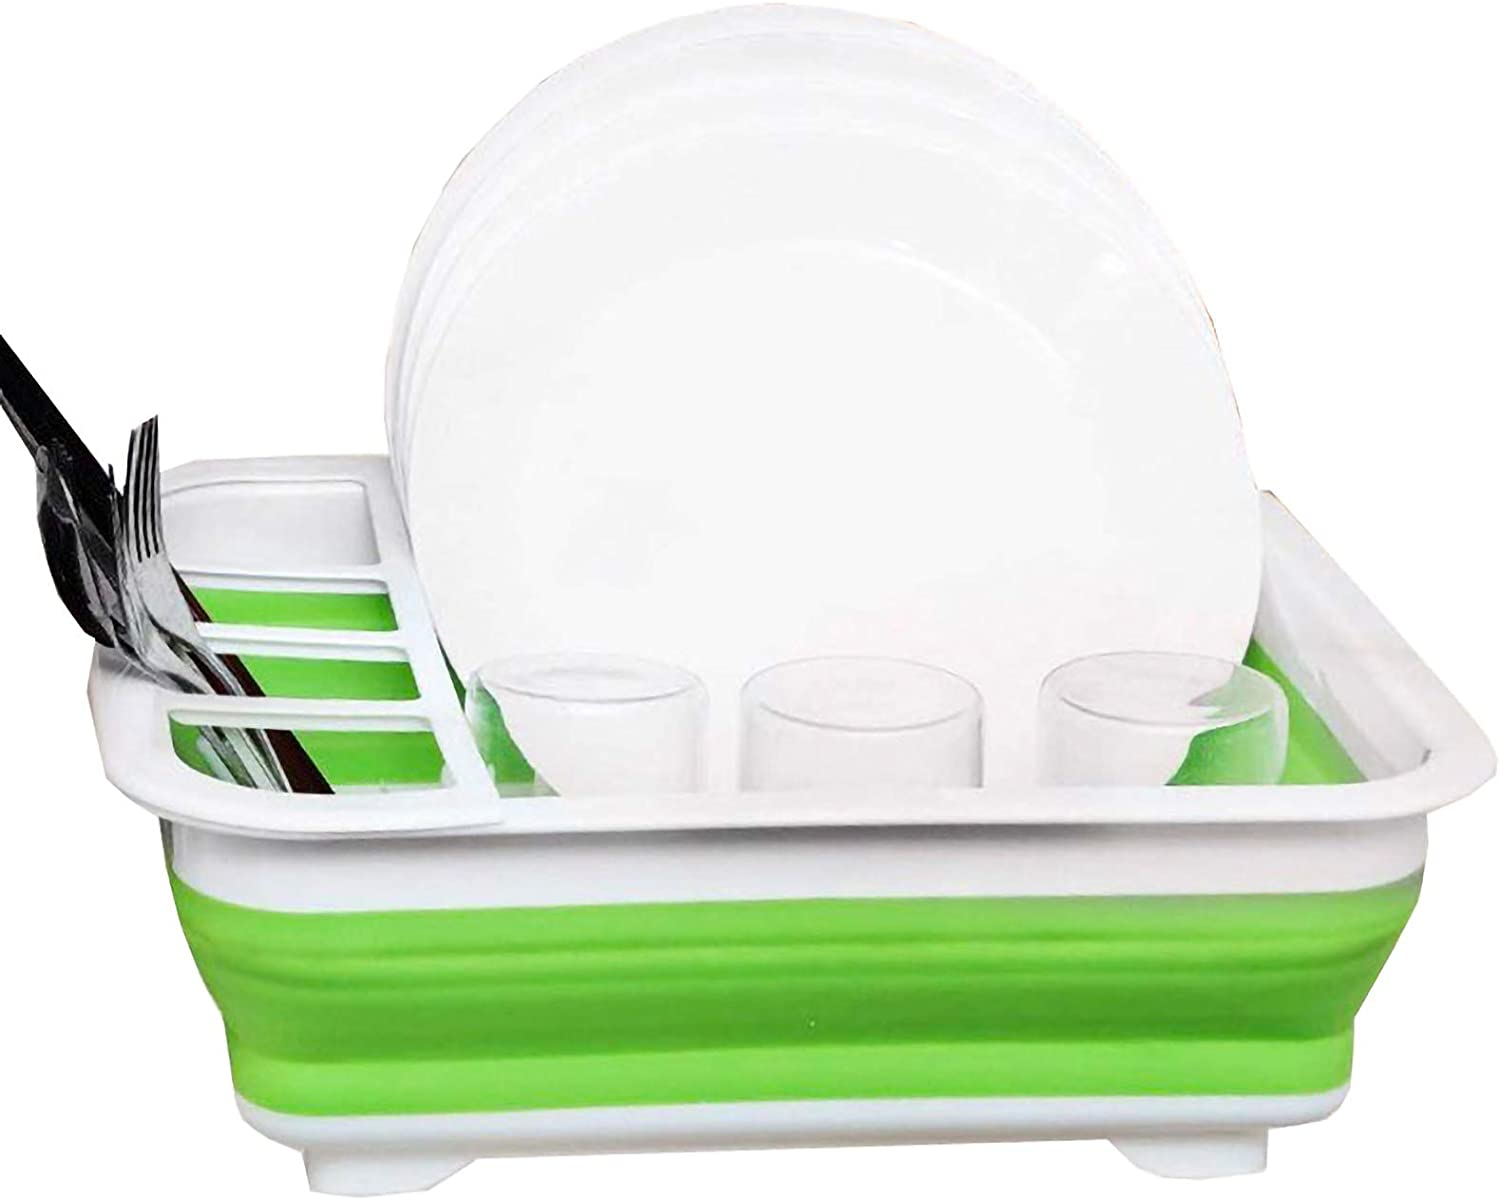 Collapsible Fashionable Dish Rack Foldable Dr Drying Portable Denver Mall